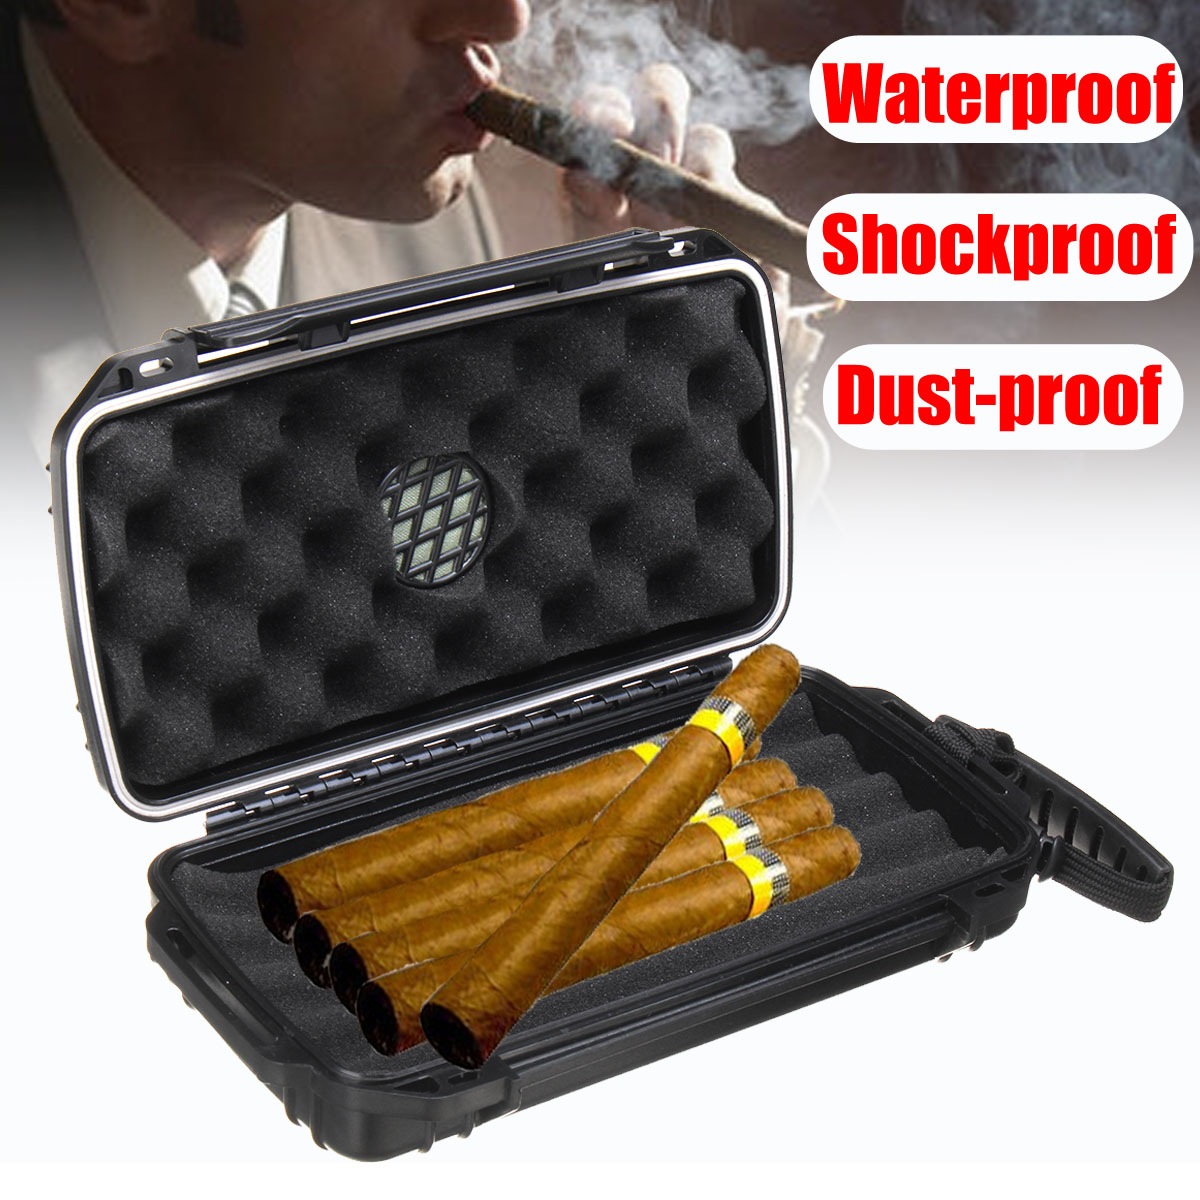 Cigar Accessories Black Cigars Storage 5 Cigar in Box with Sponge Lined Waterproof Dustproof for Outdoor Smoking Accessory